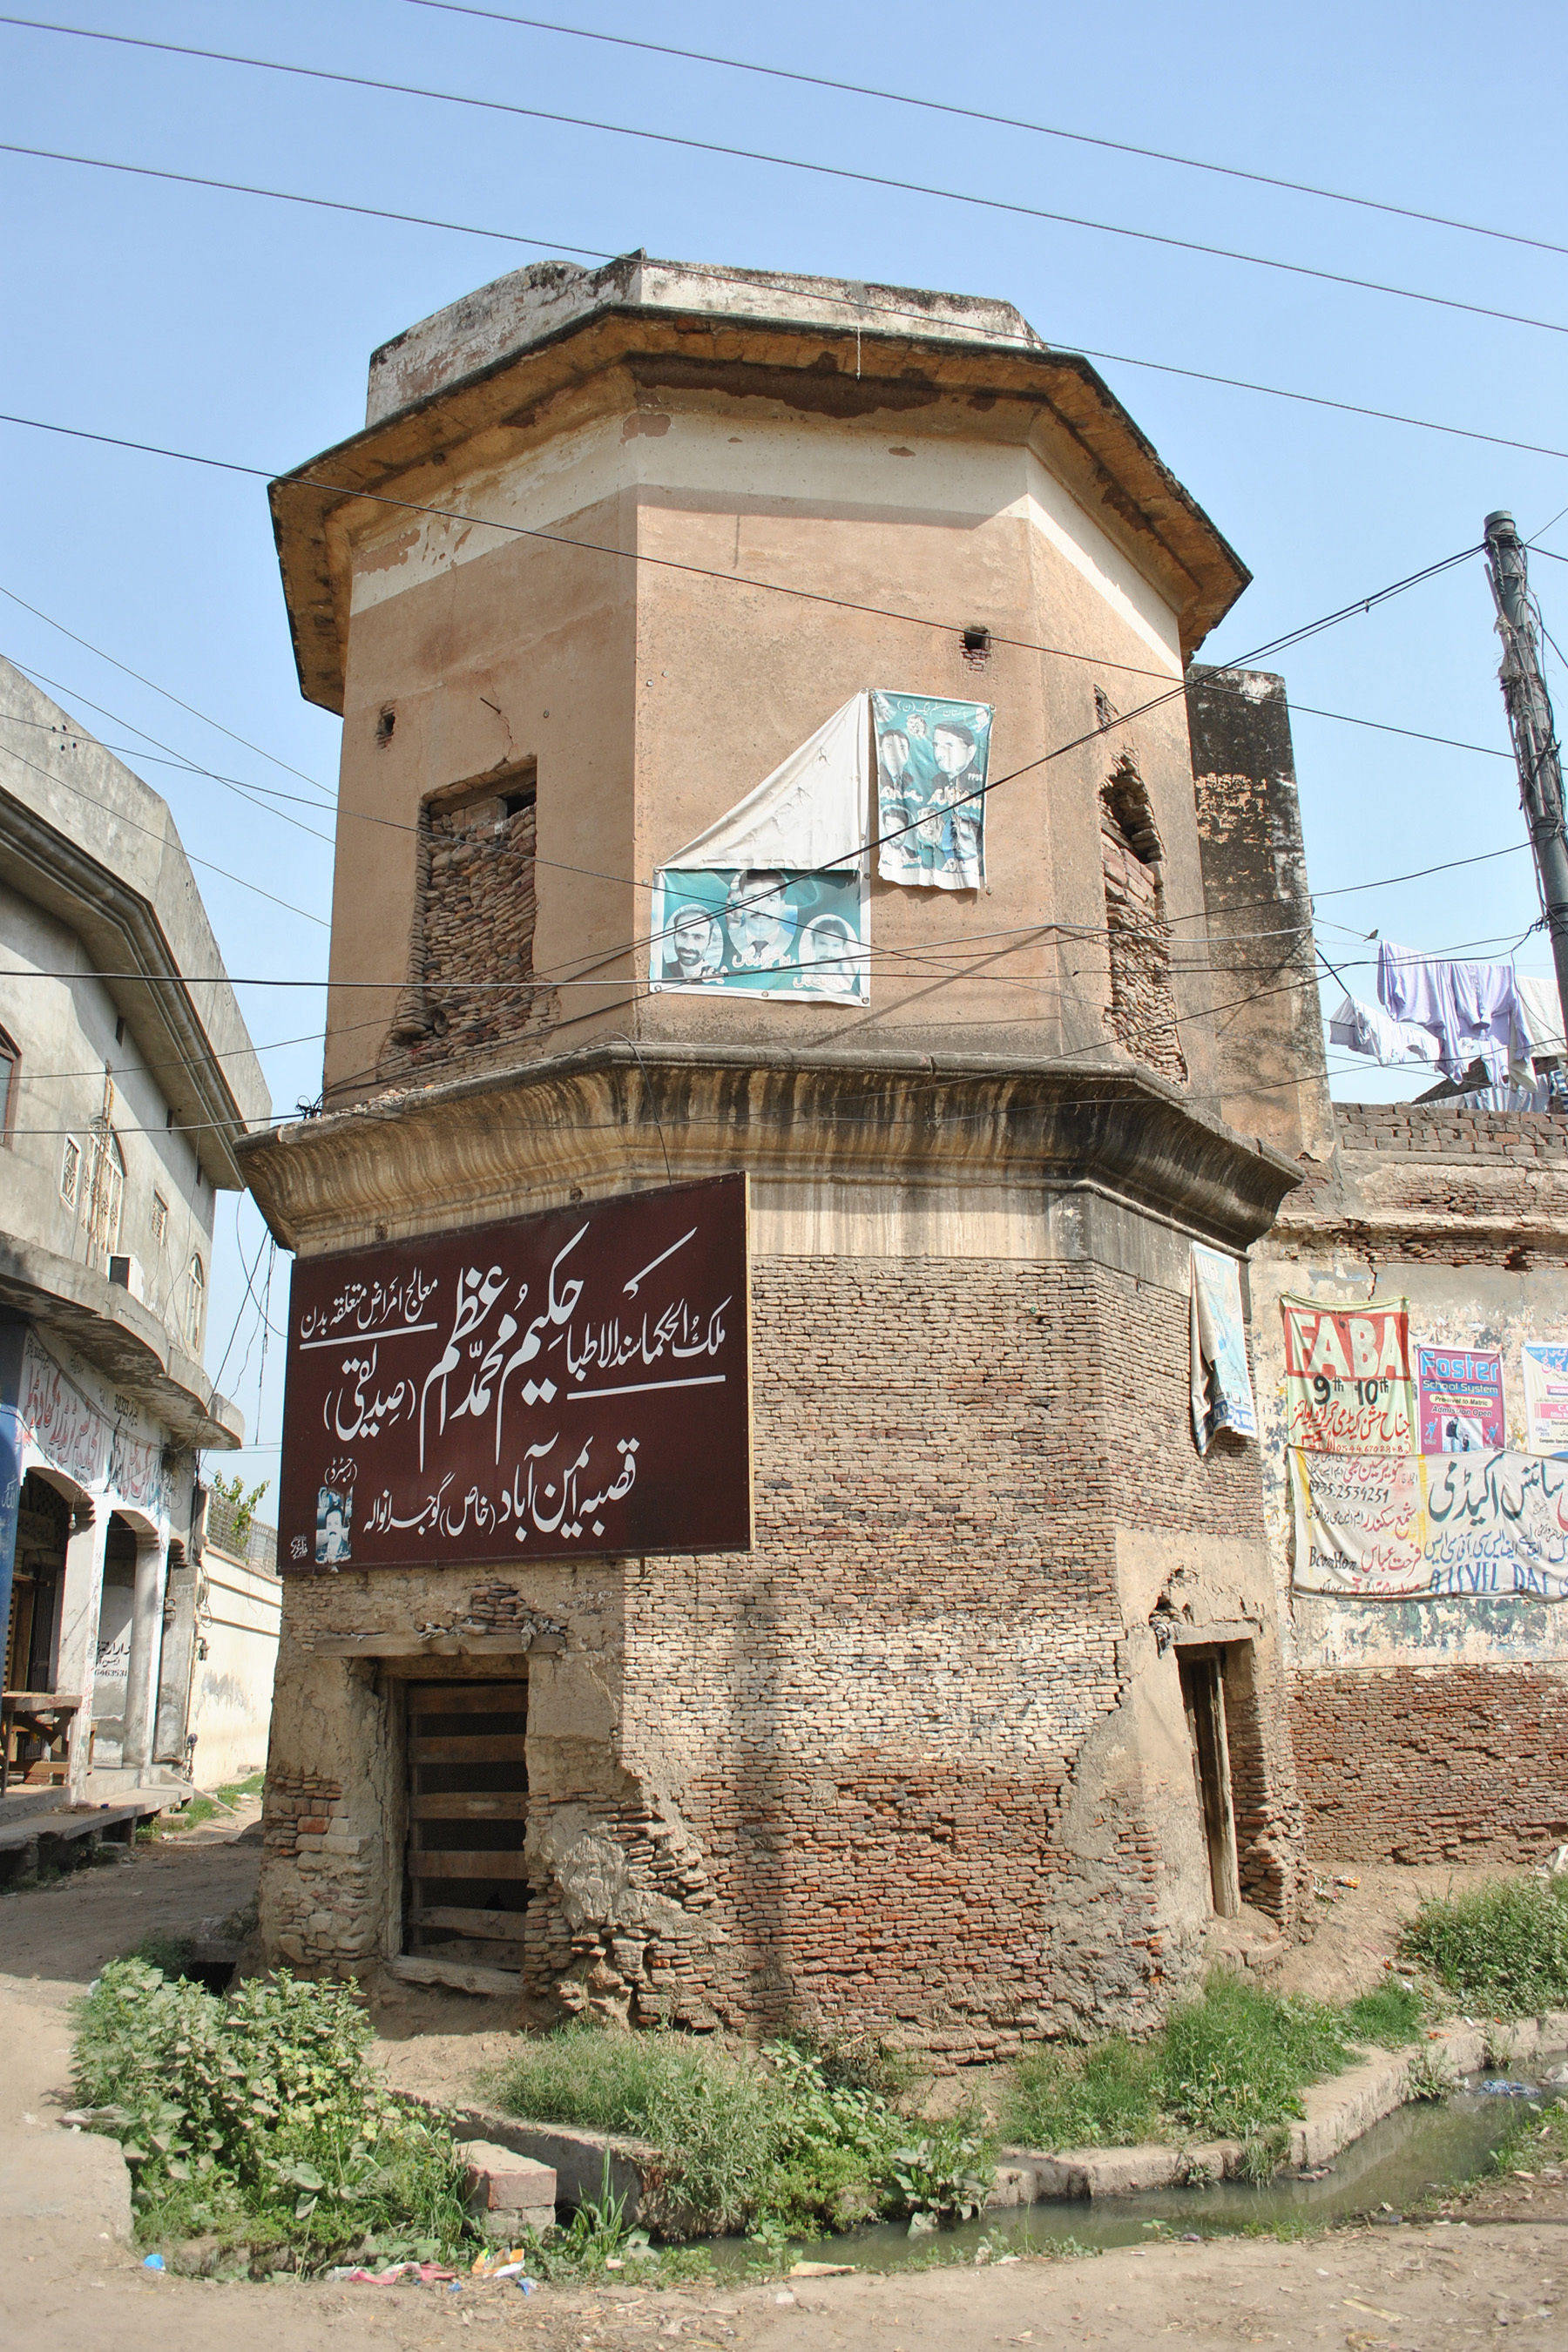 An old structure which is called a 'dak chowki'. It is located a few yards away from the old gates of Eminabad.